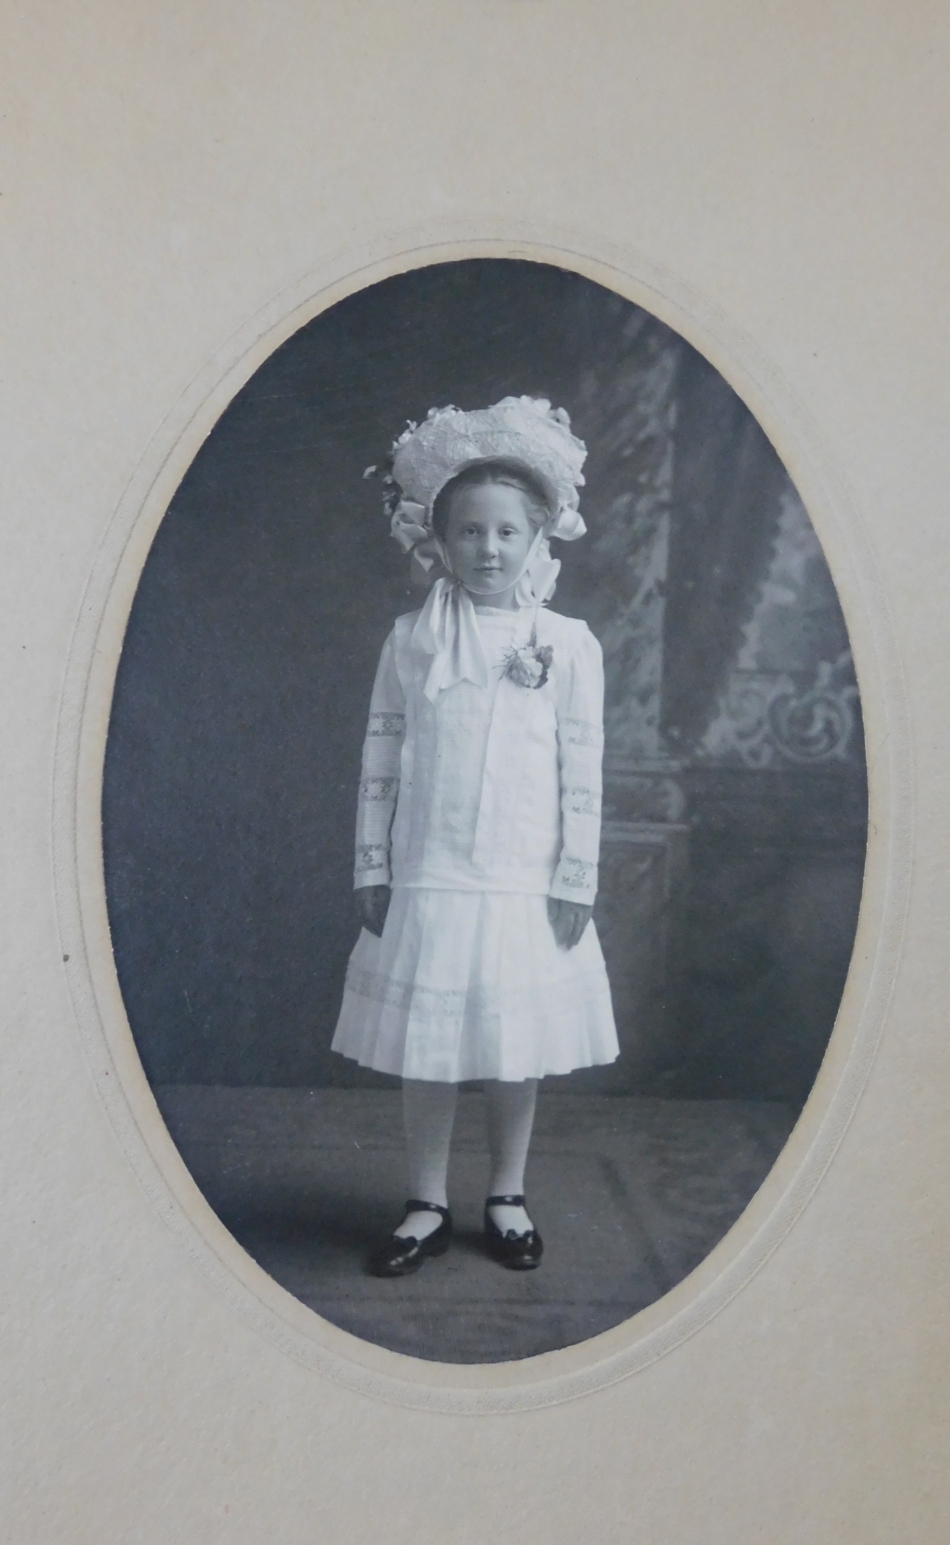 Vintage Edwardian Girl Photo Cabinet Card, 1900s Photograph White Dress and Large Hat